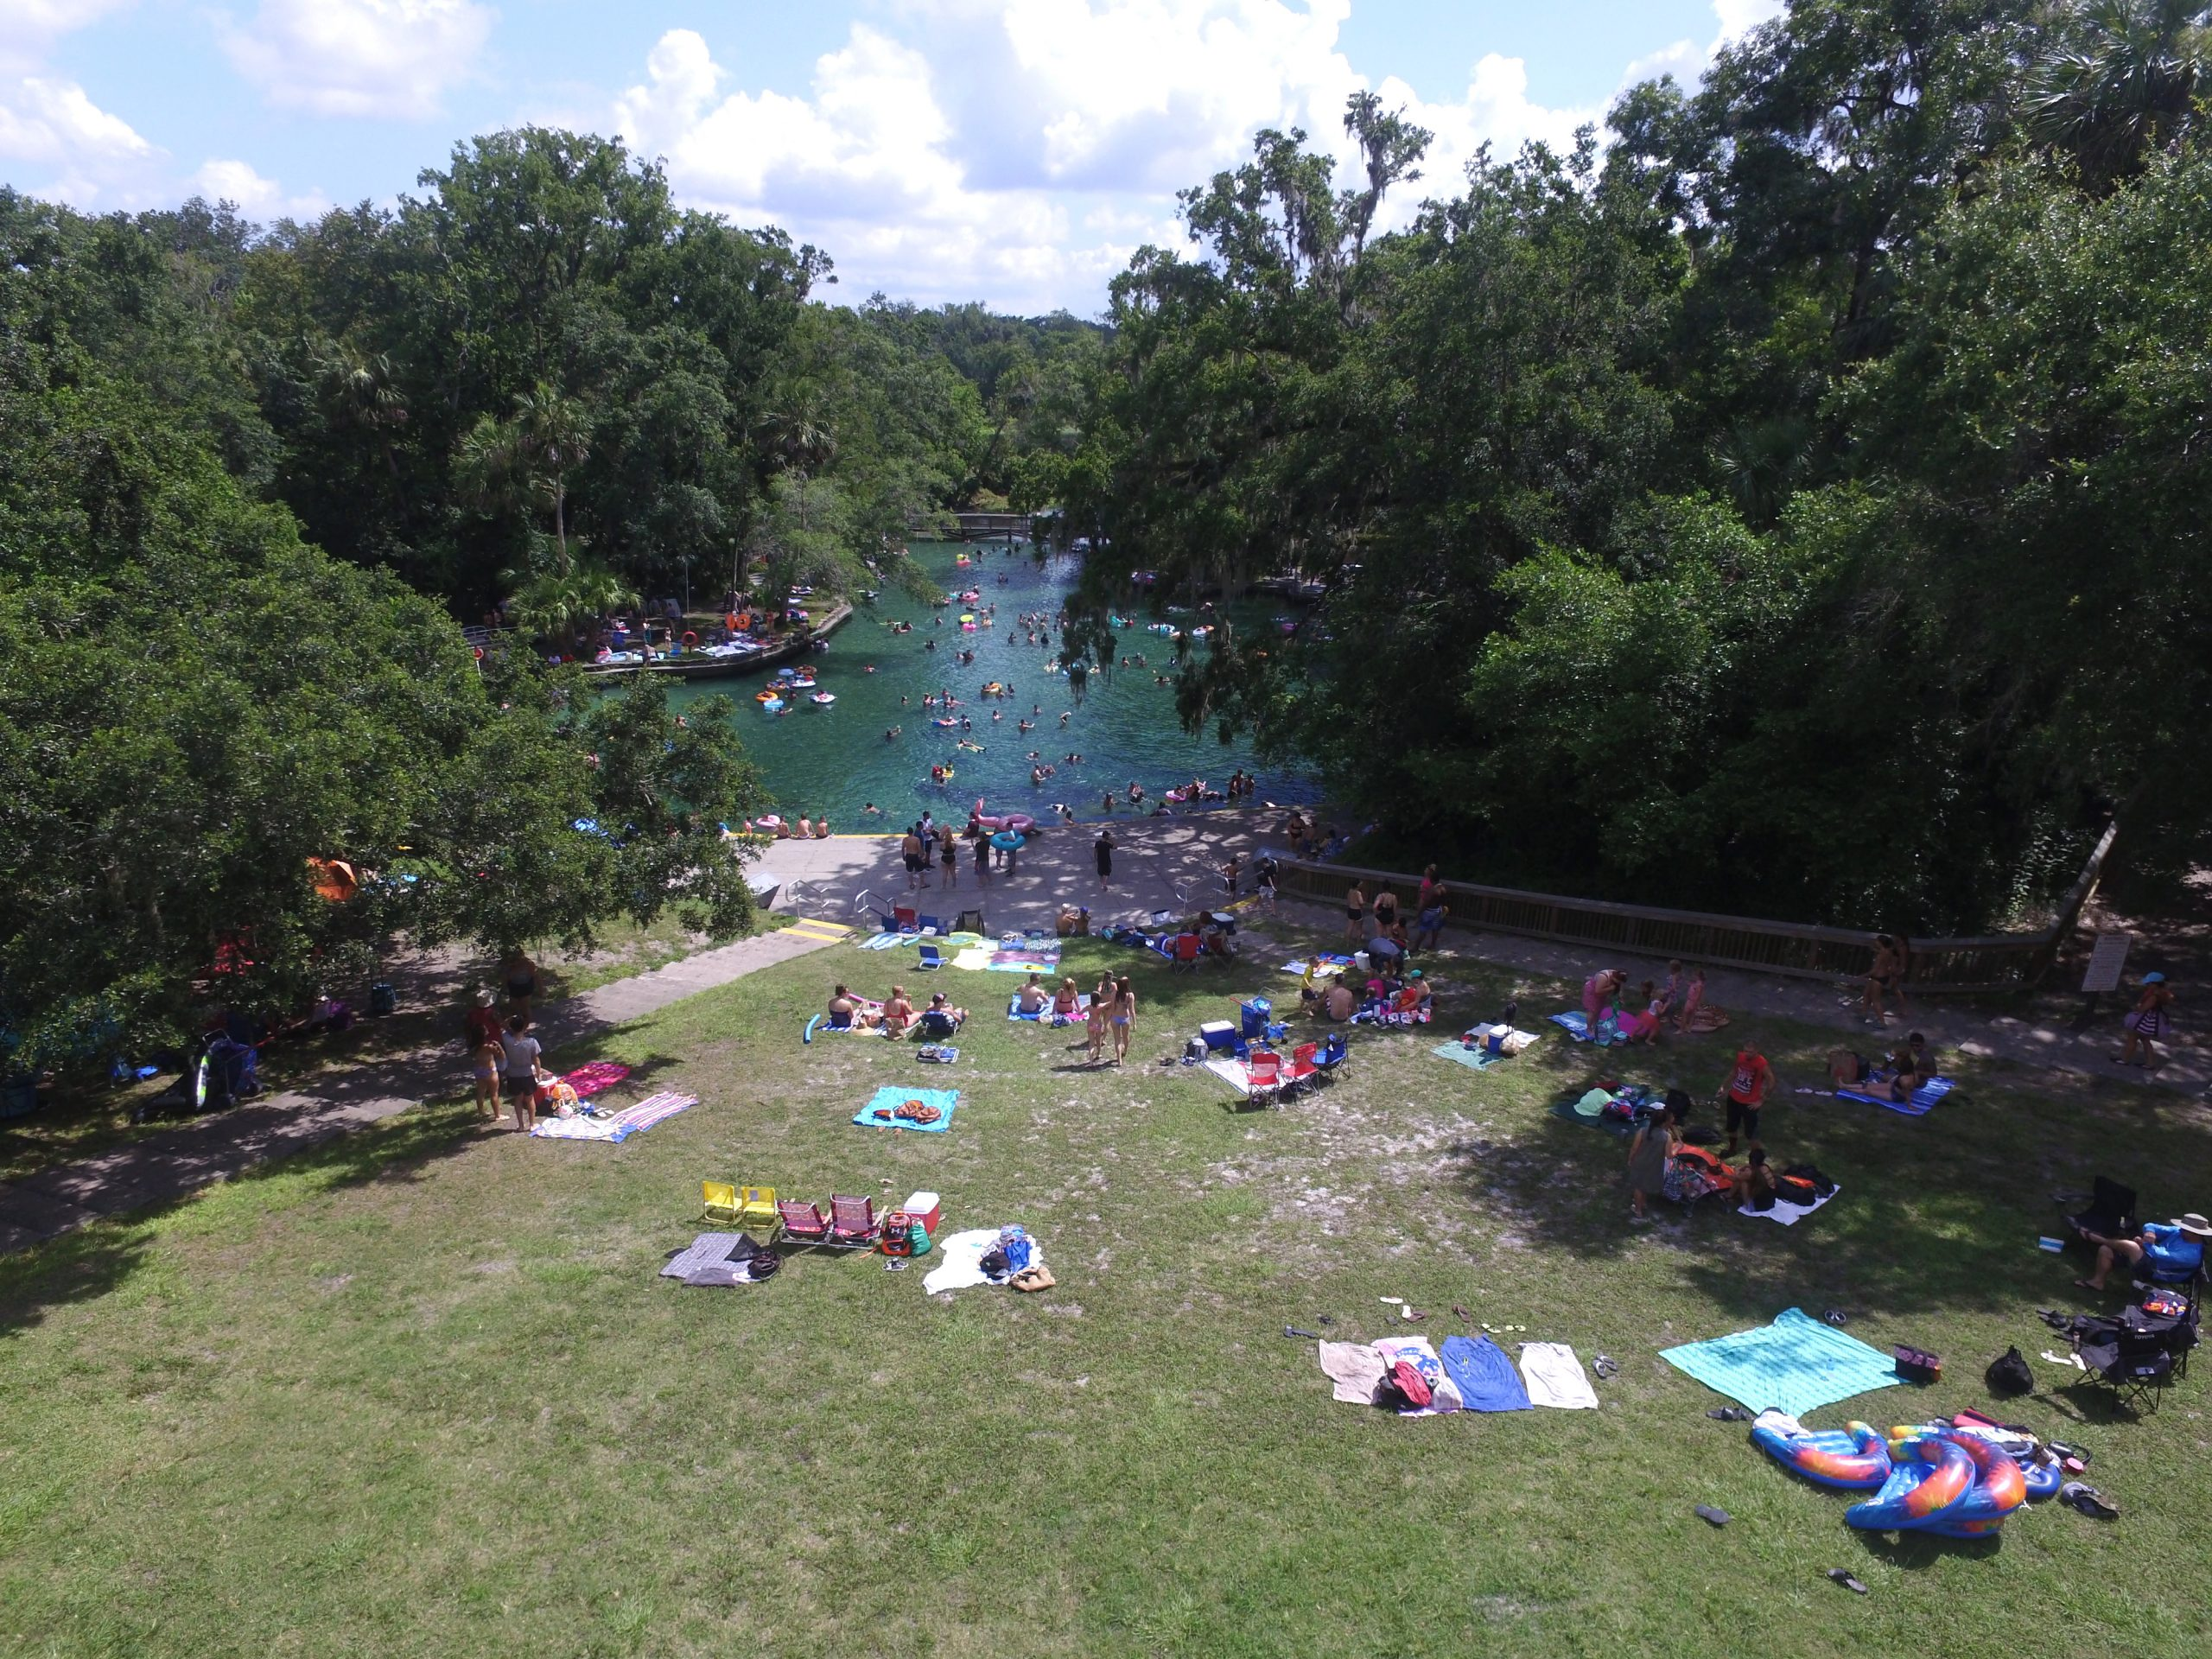 Get your nature on at Wekiwa Springs